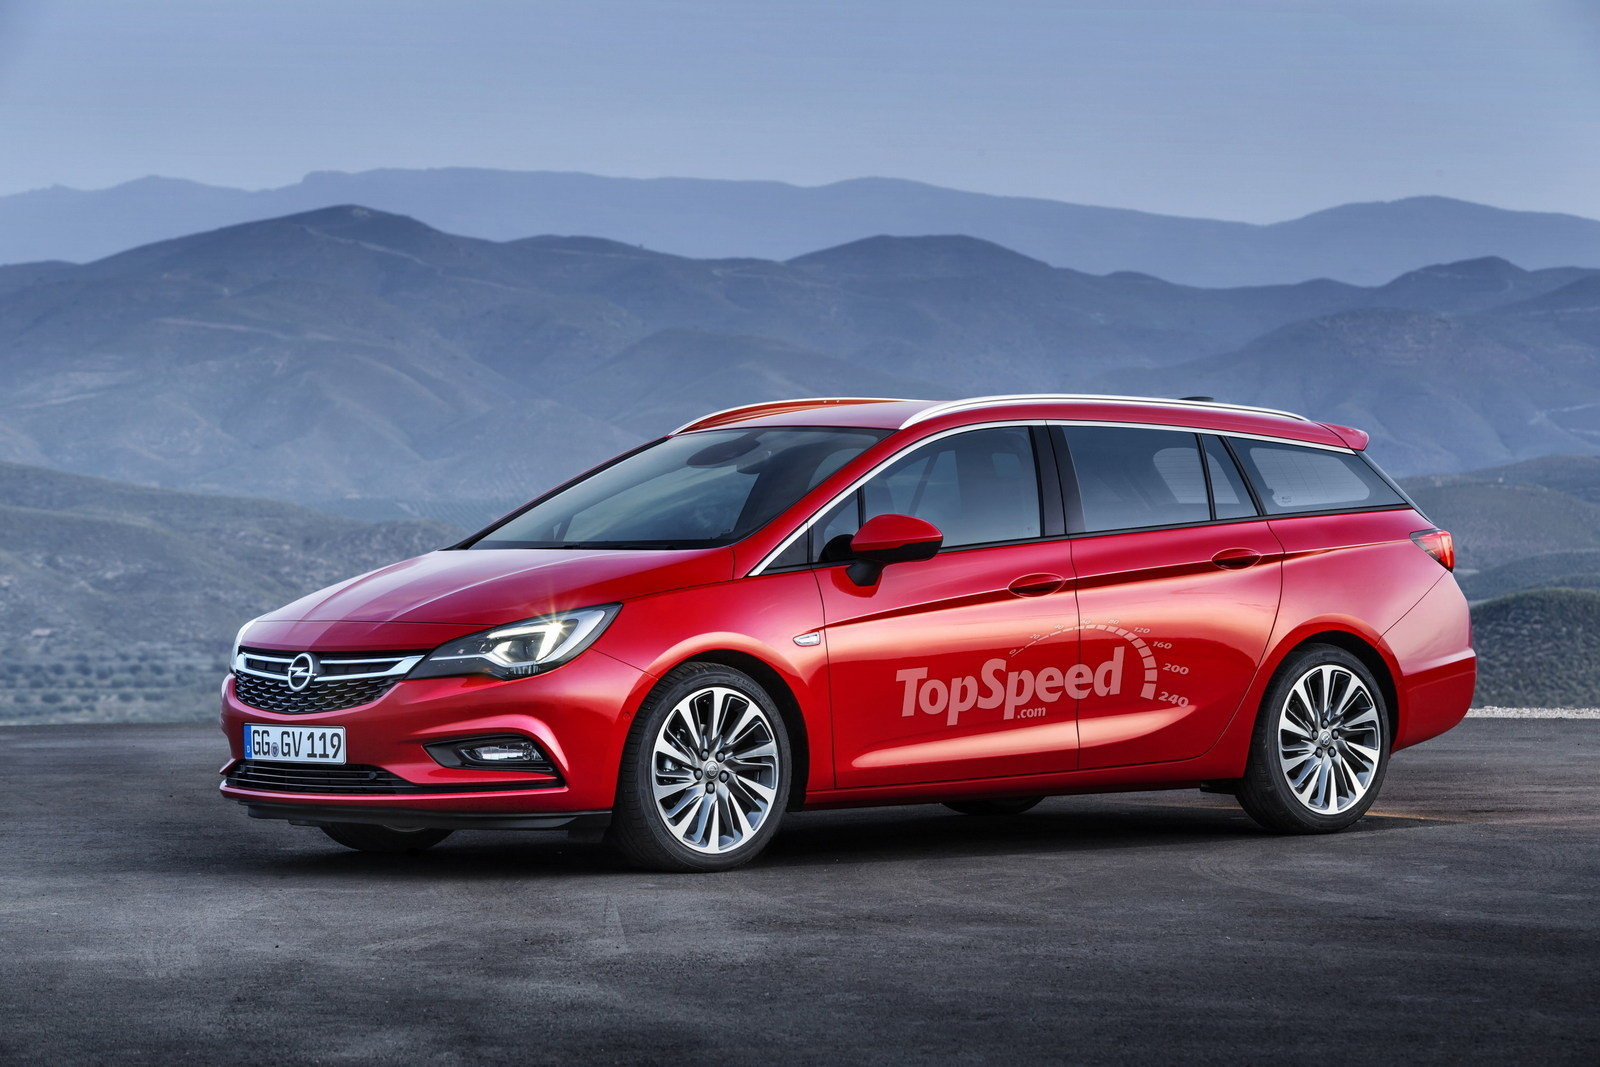 2017 opel astra sports tourer picture 643894 car review top speed. Black Bedroom Furniture Sets. Home Design Ideas